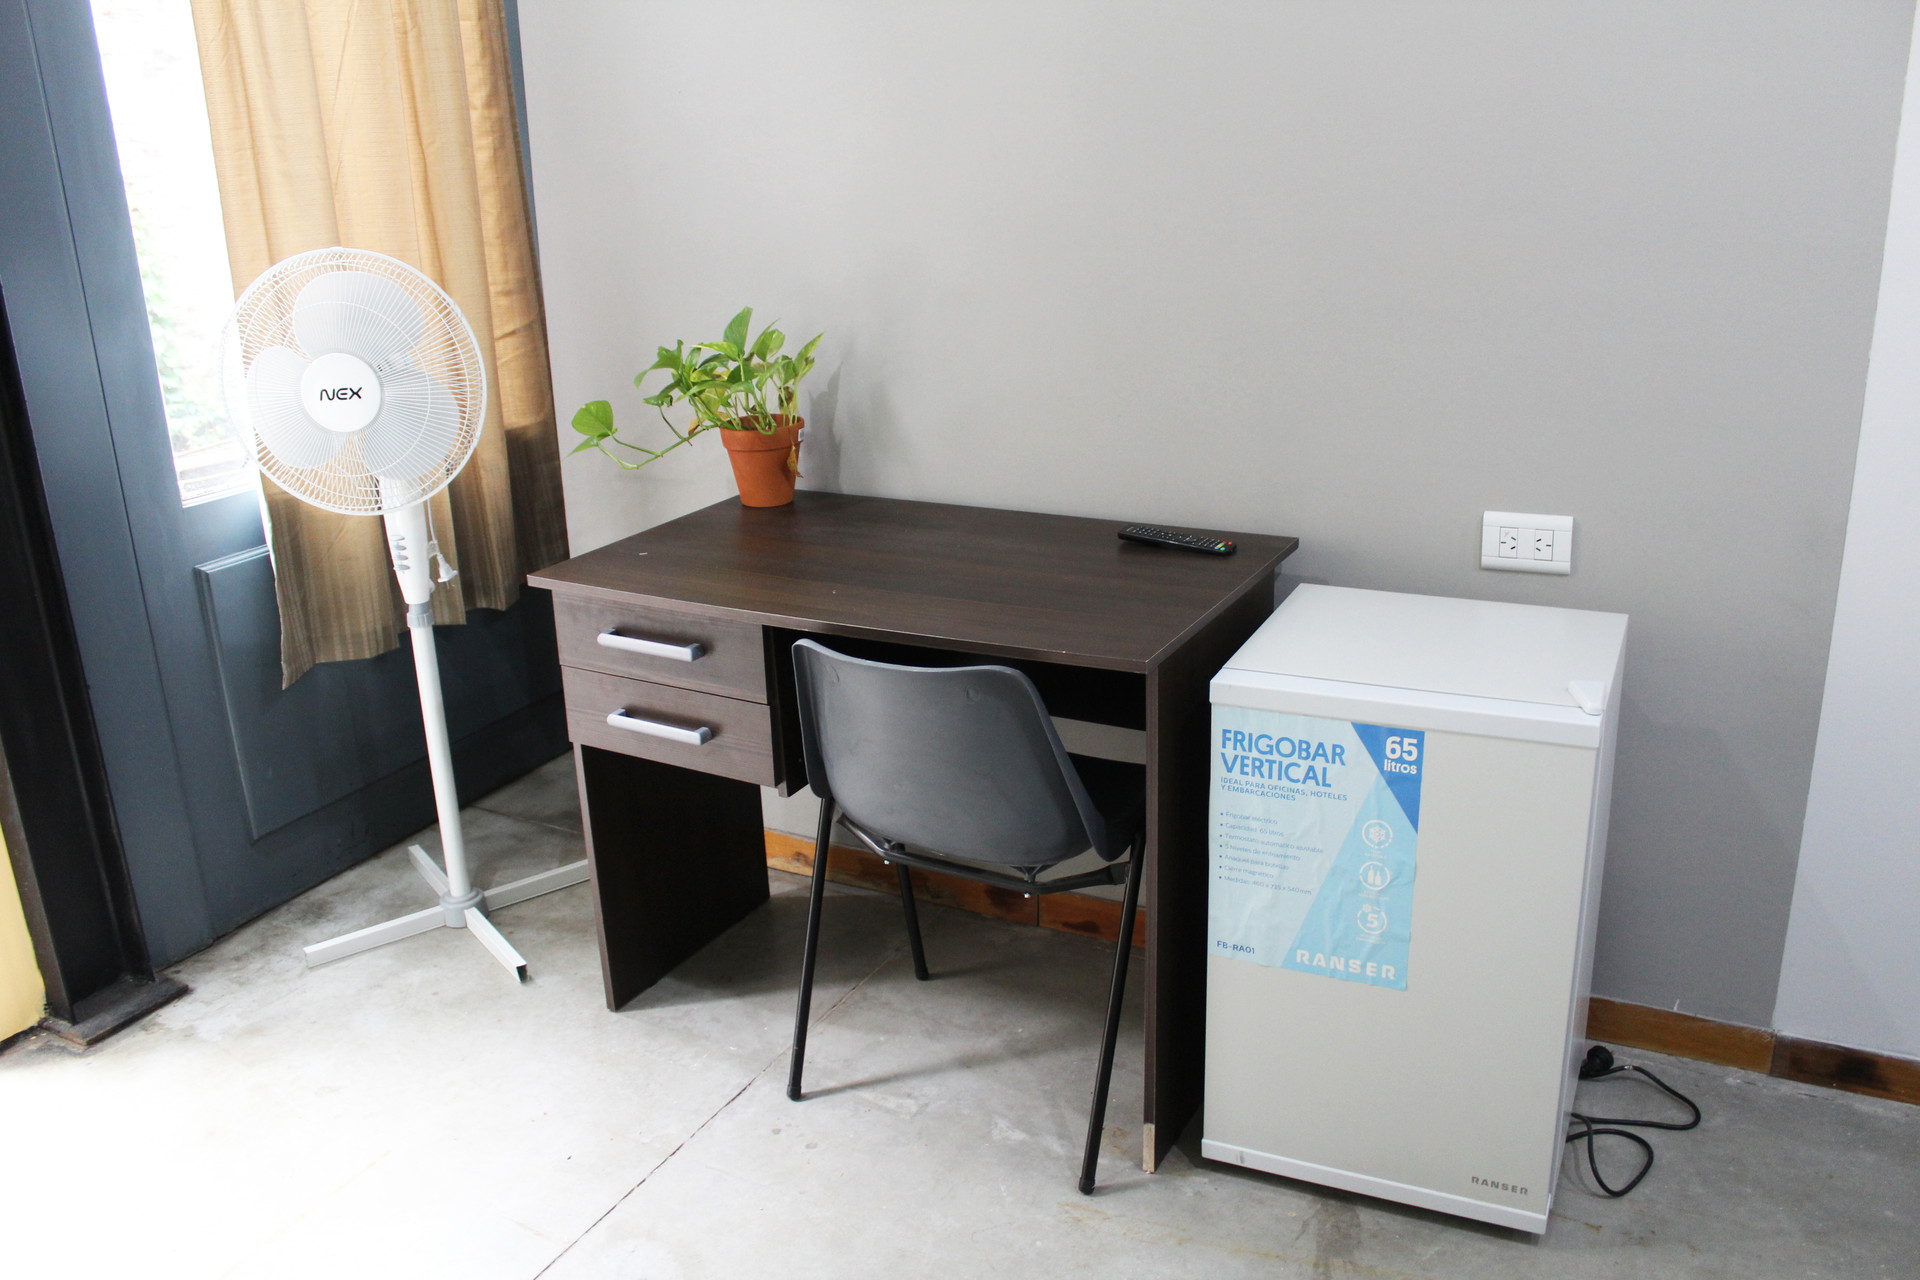 Room For Rent In 13 Bedroom Apartment In Buenos Aires With Internet And With Cleaning Service